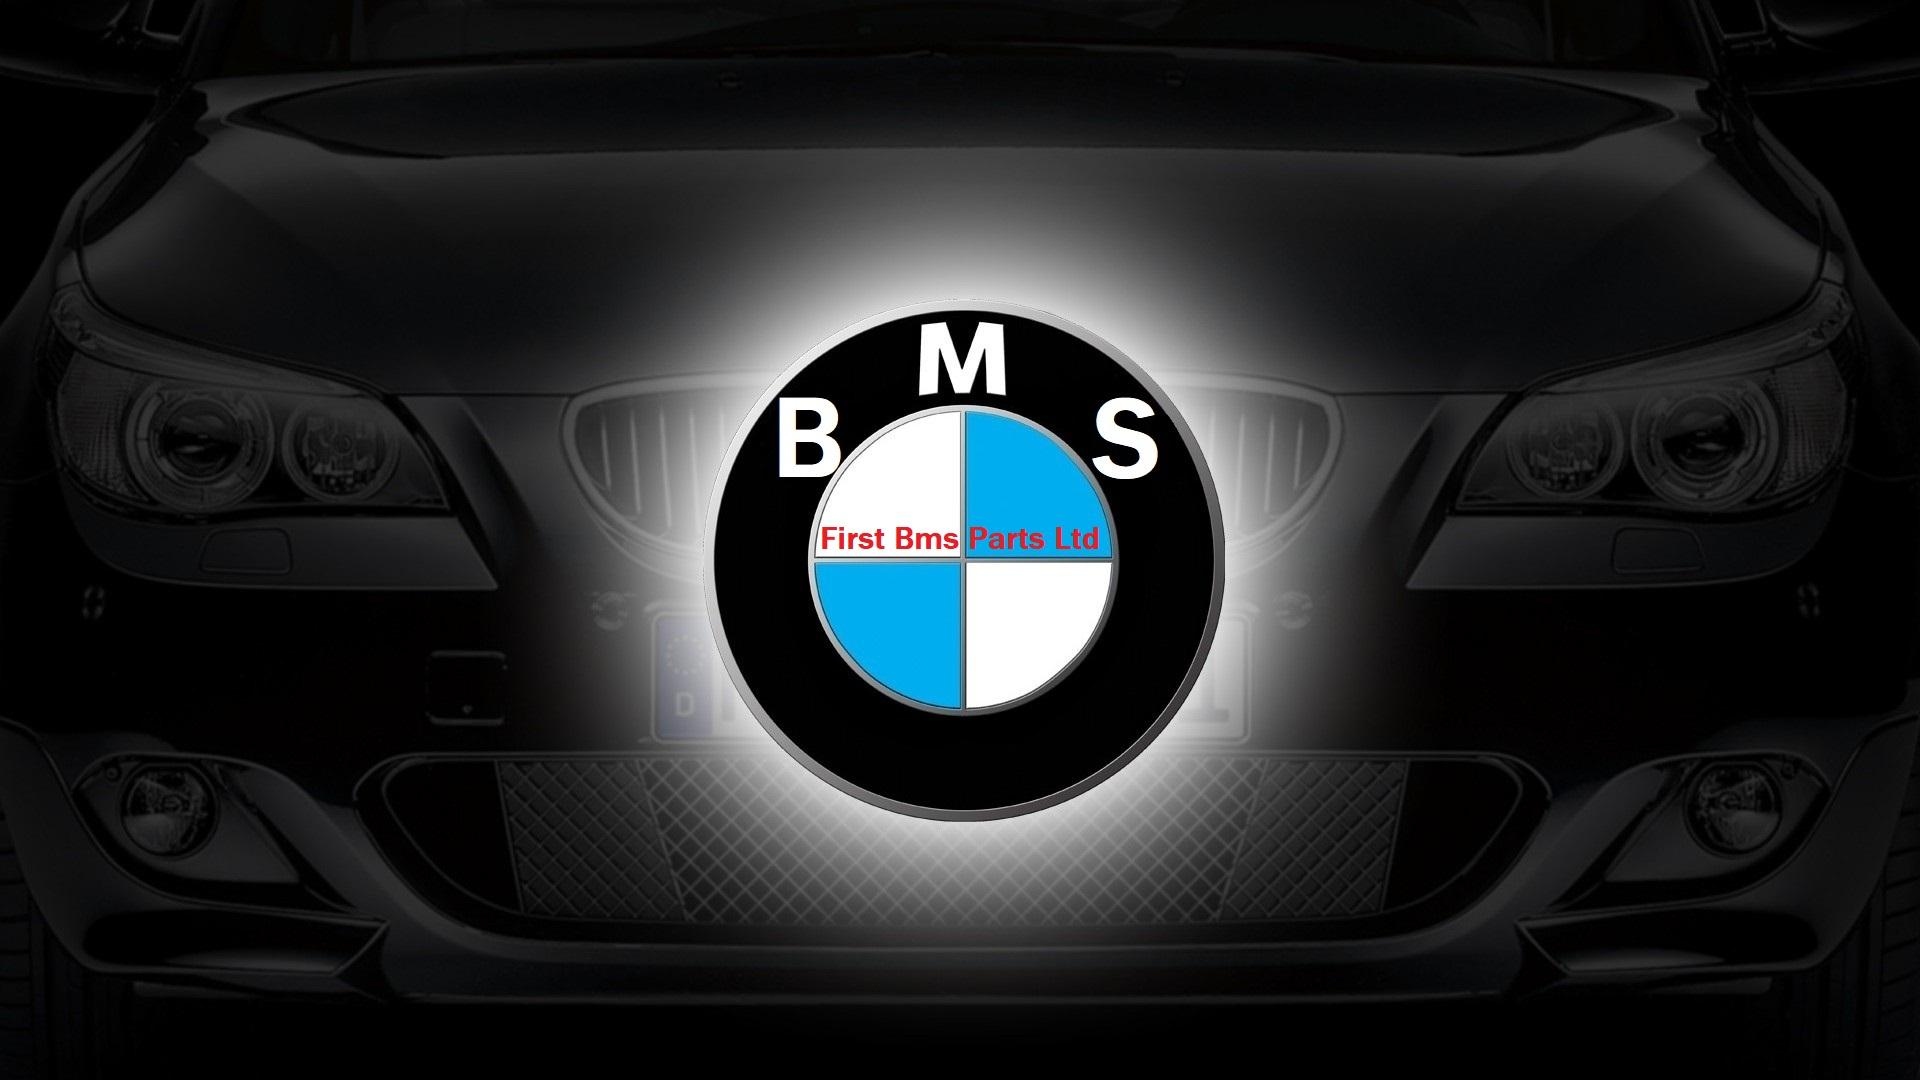 First BMS Parts Ltd logo